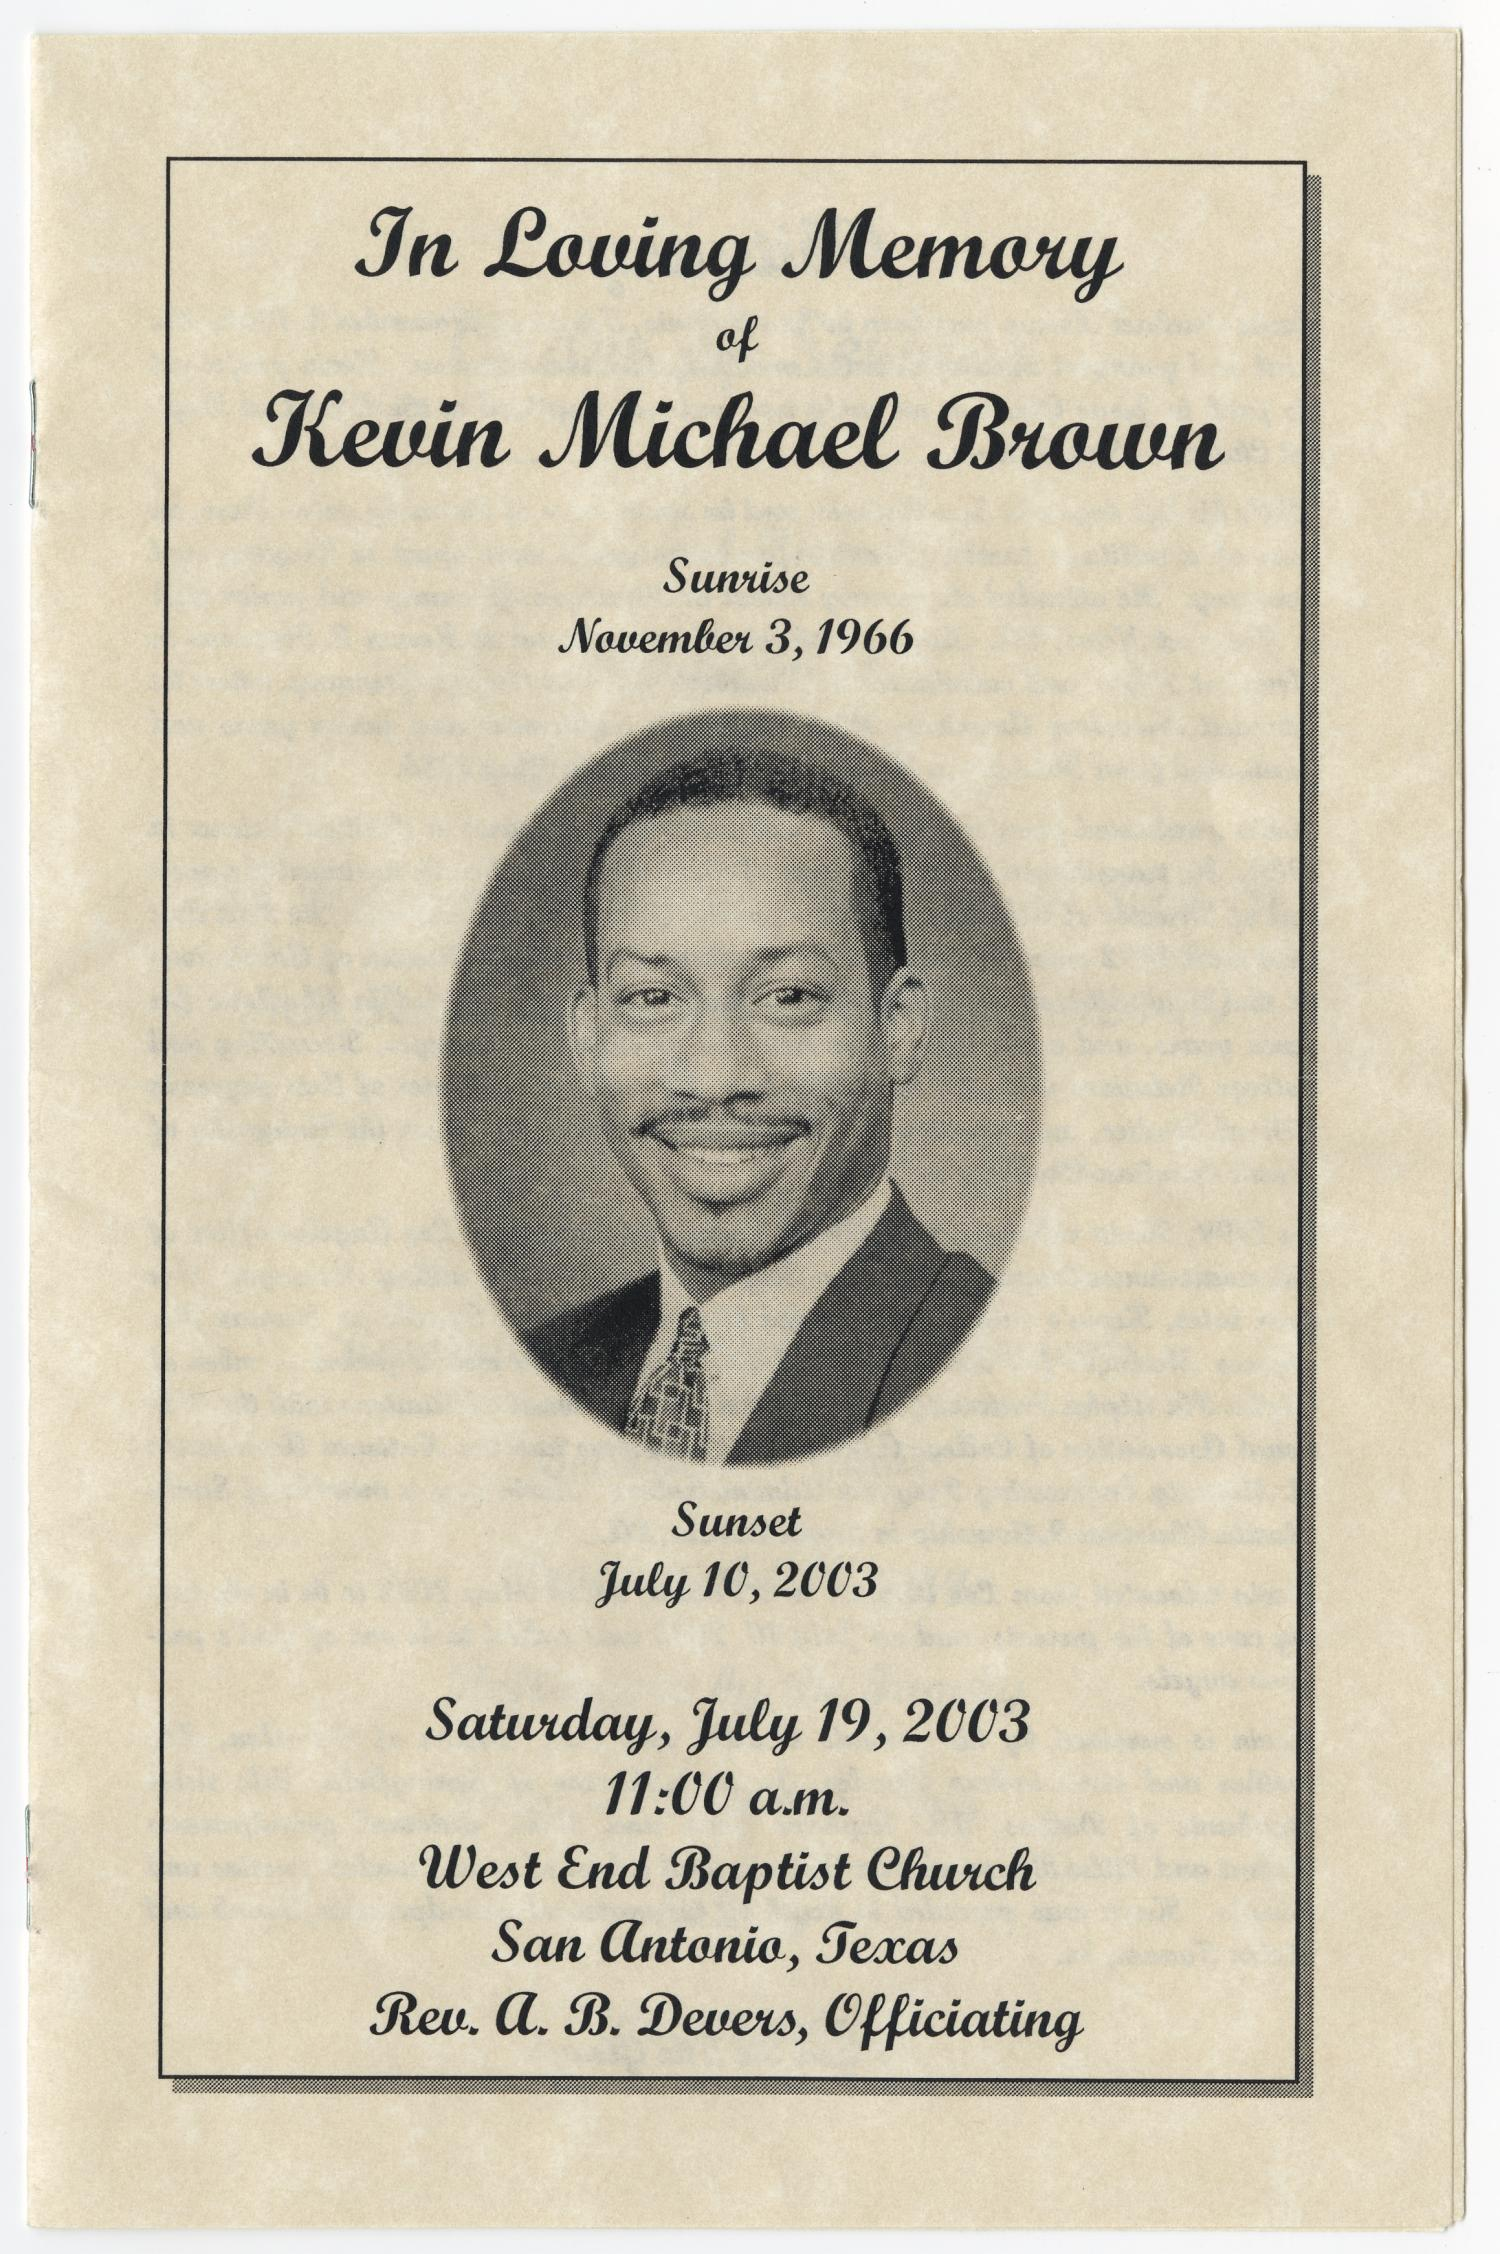 Funeral Program For Kevin Michael Brown July 19 2003